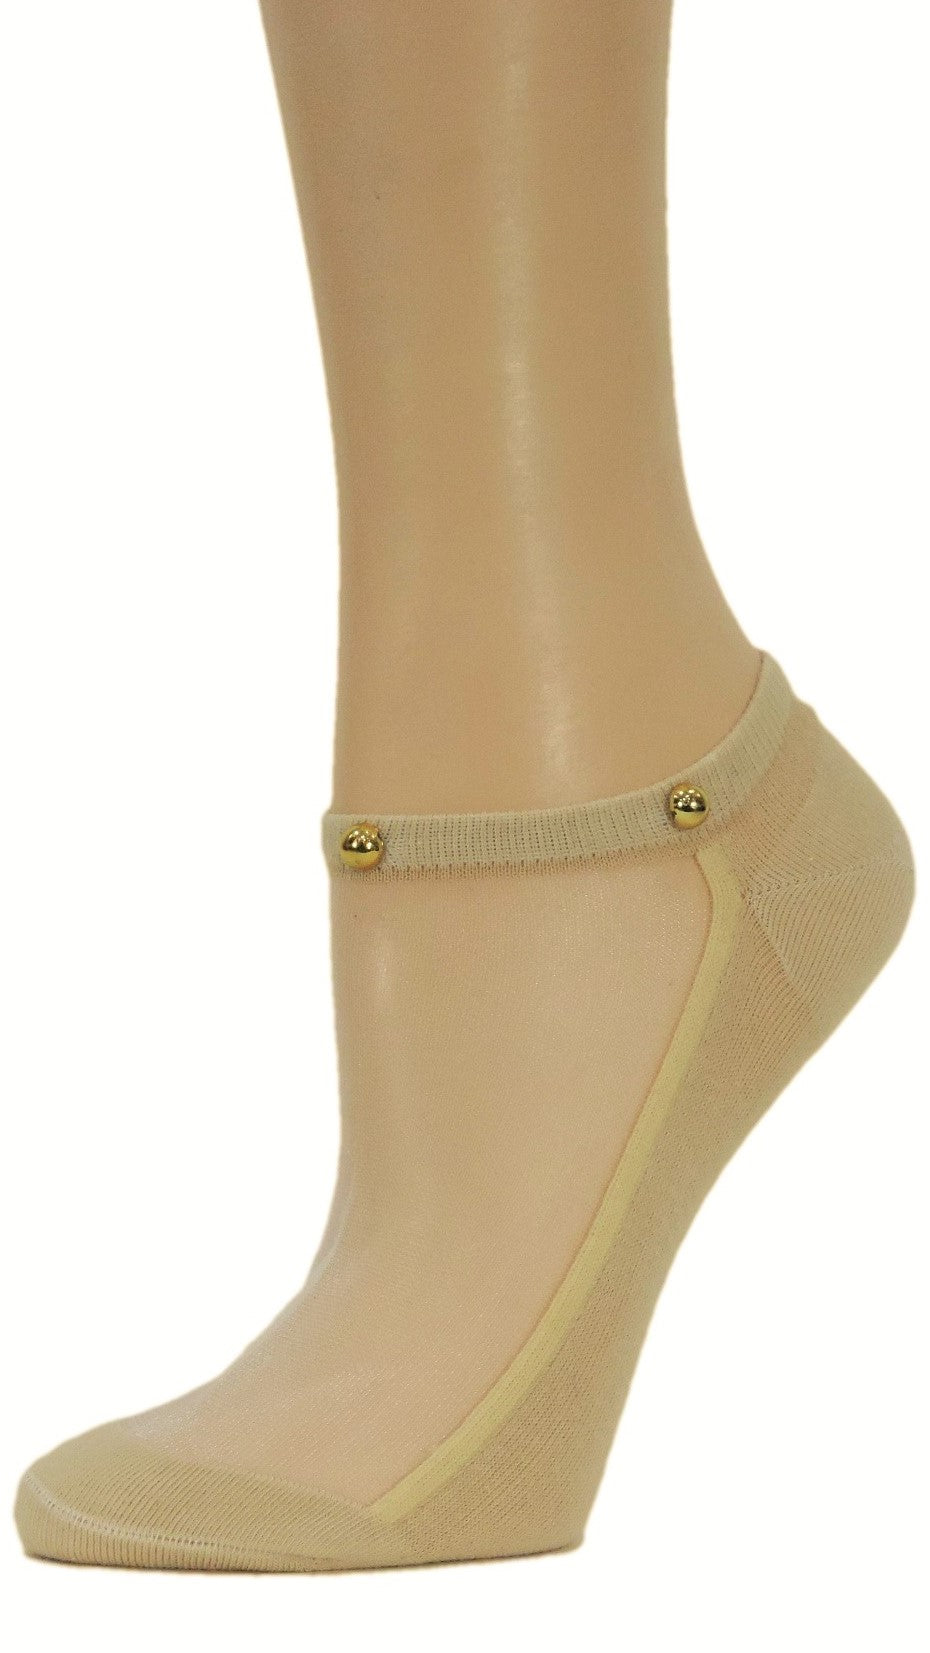 Sleek Beige Custom Ankle Sheer Socks with beads